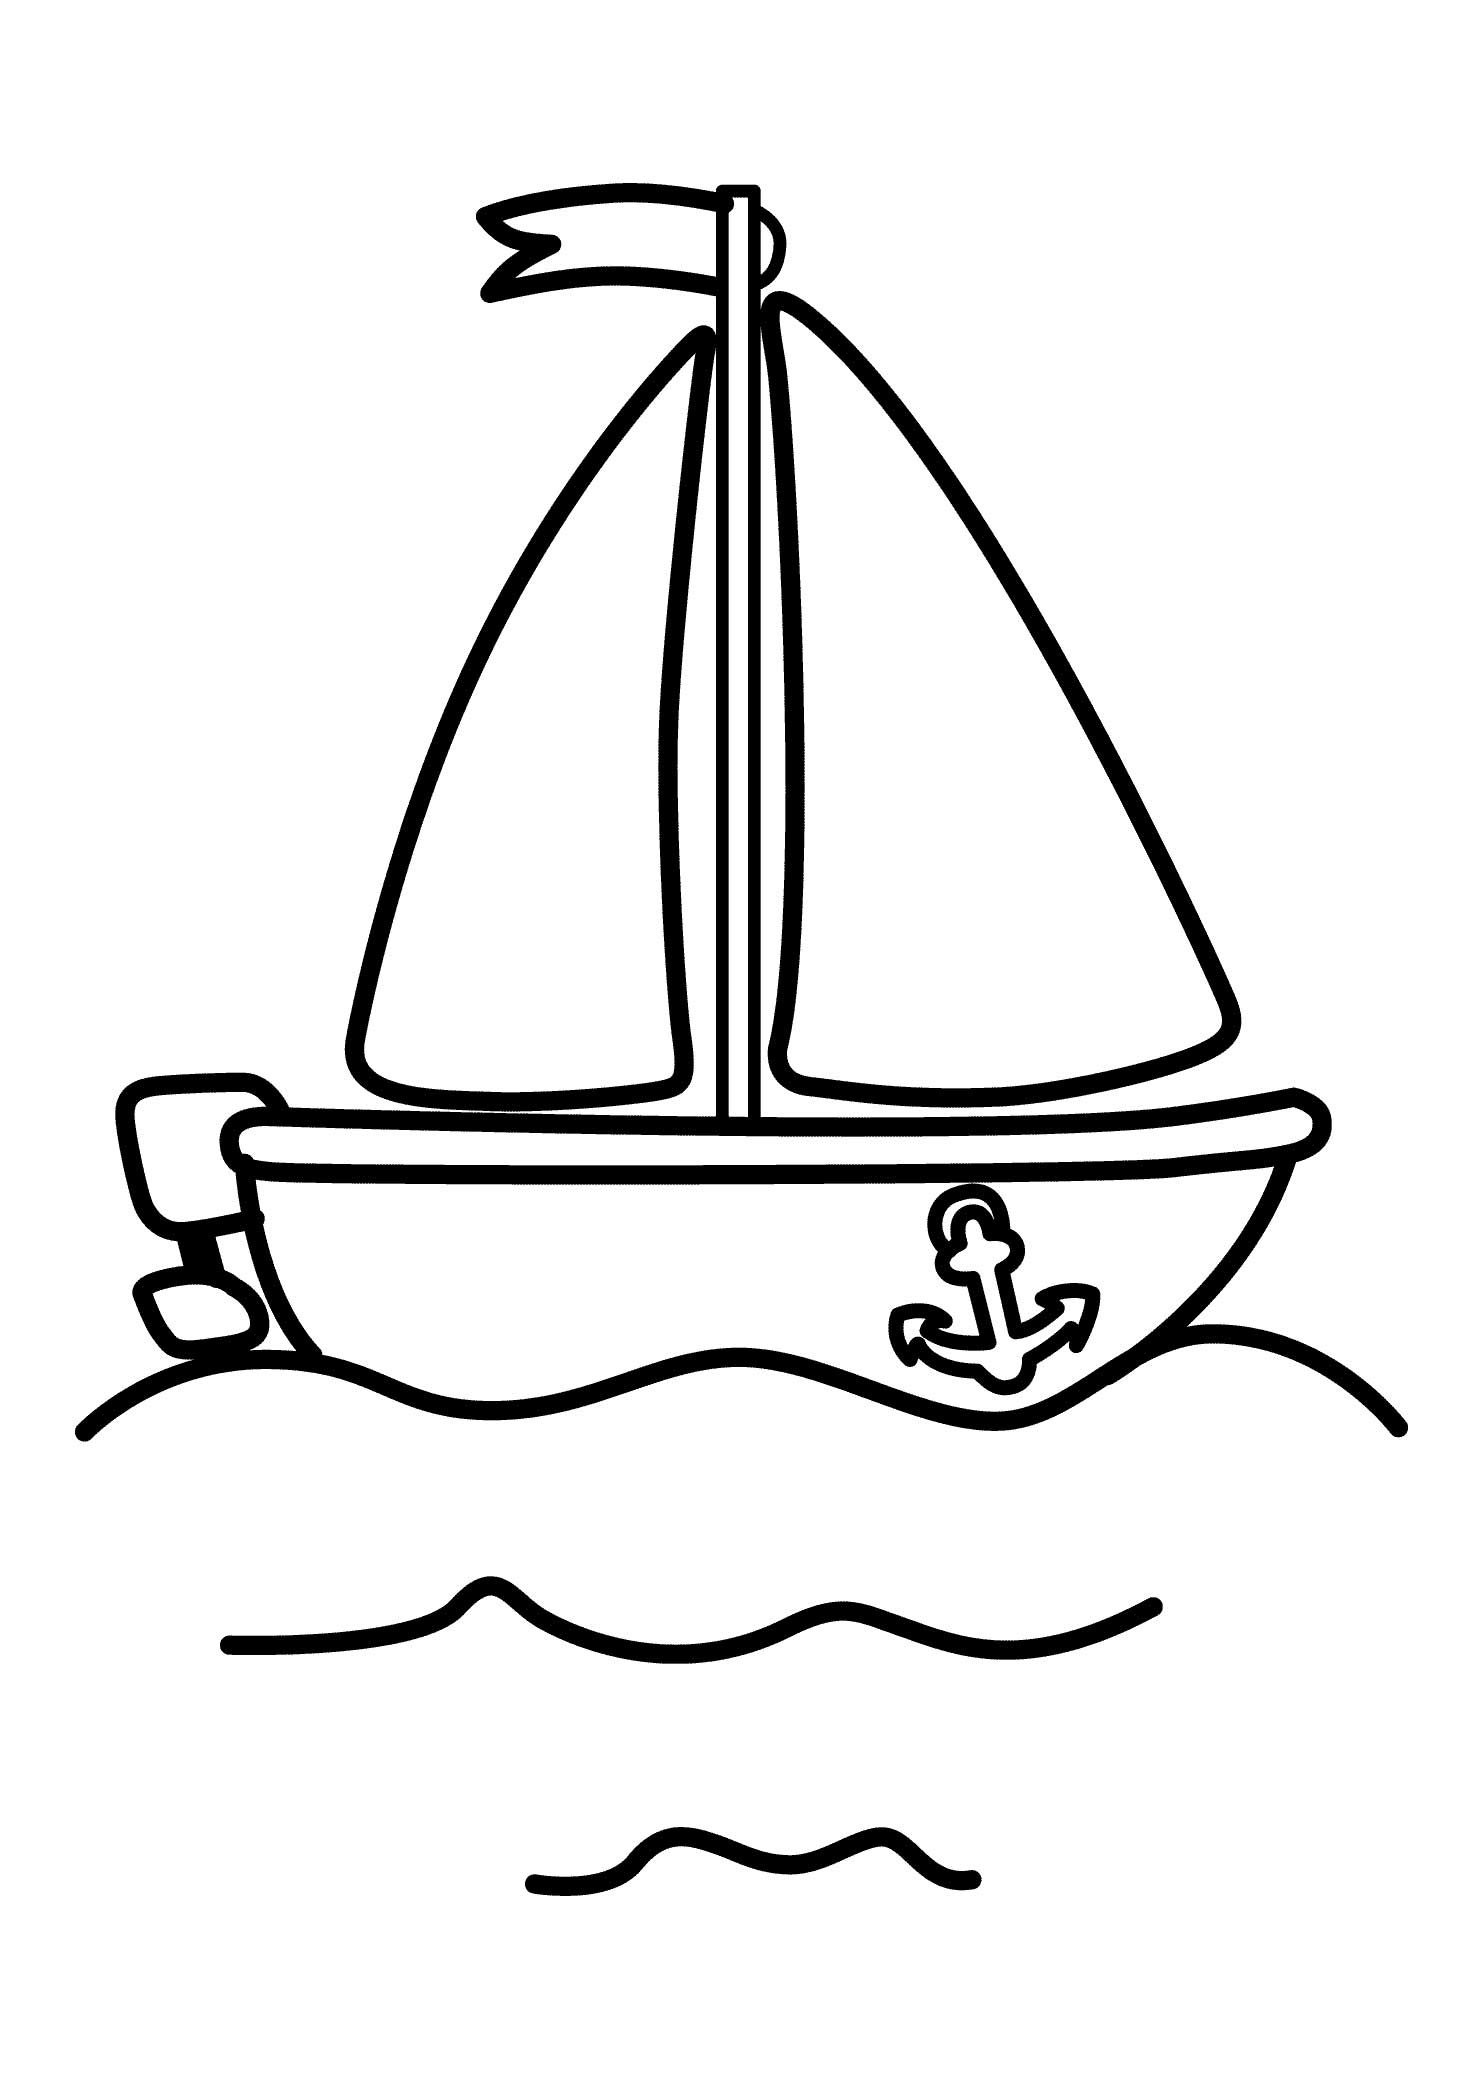 Pinshreya Thakur On Free Coloring Pages | Coloring Pages For - Free Printable Boat Pictures